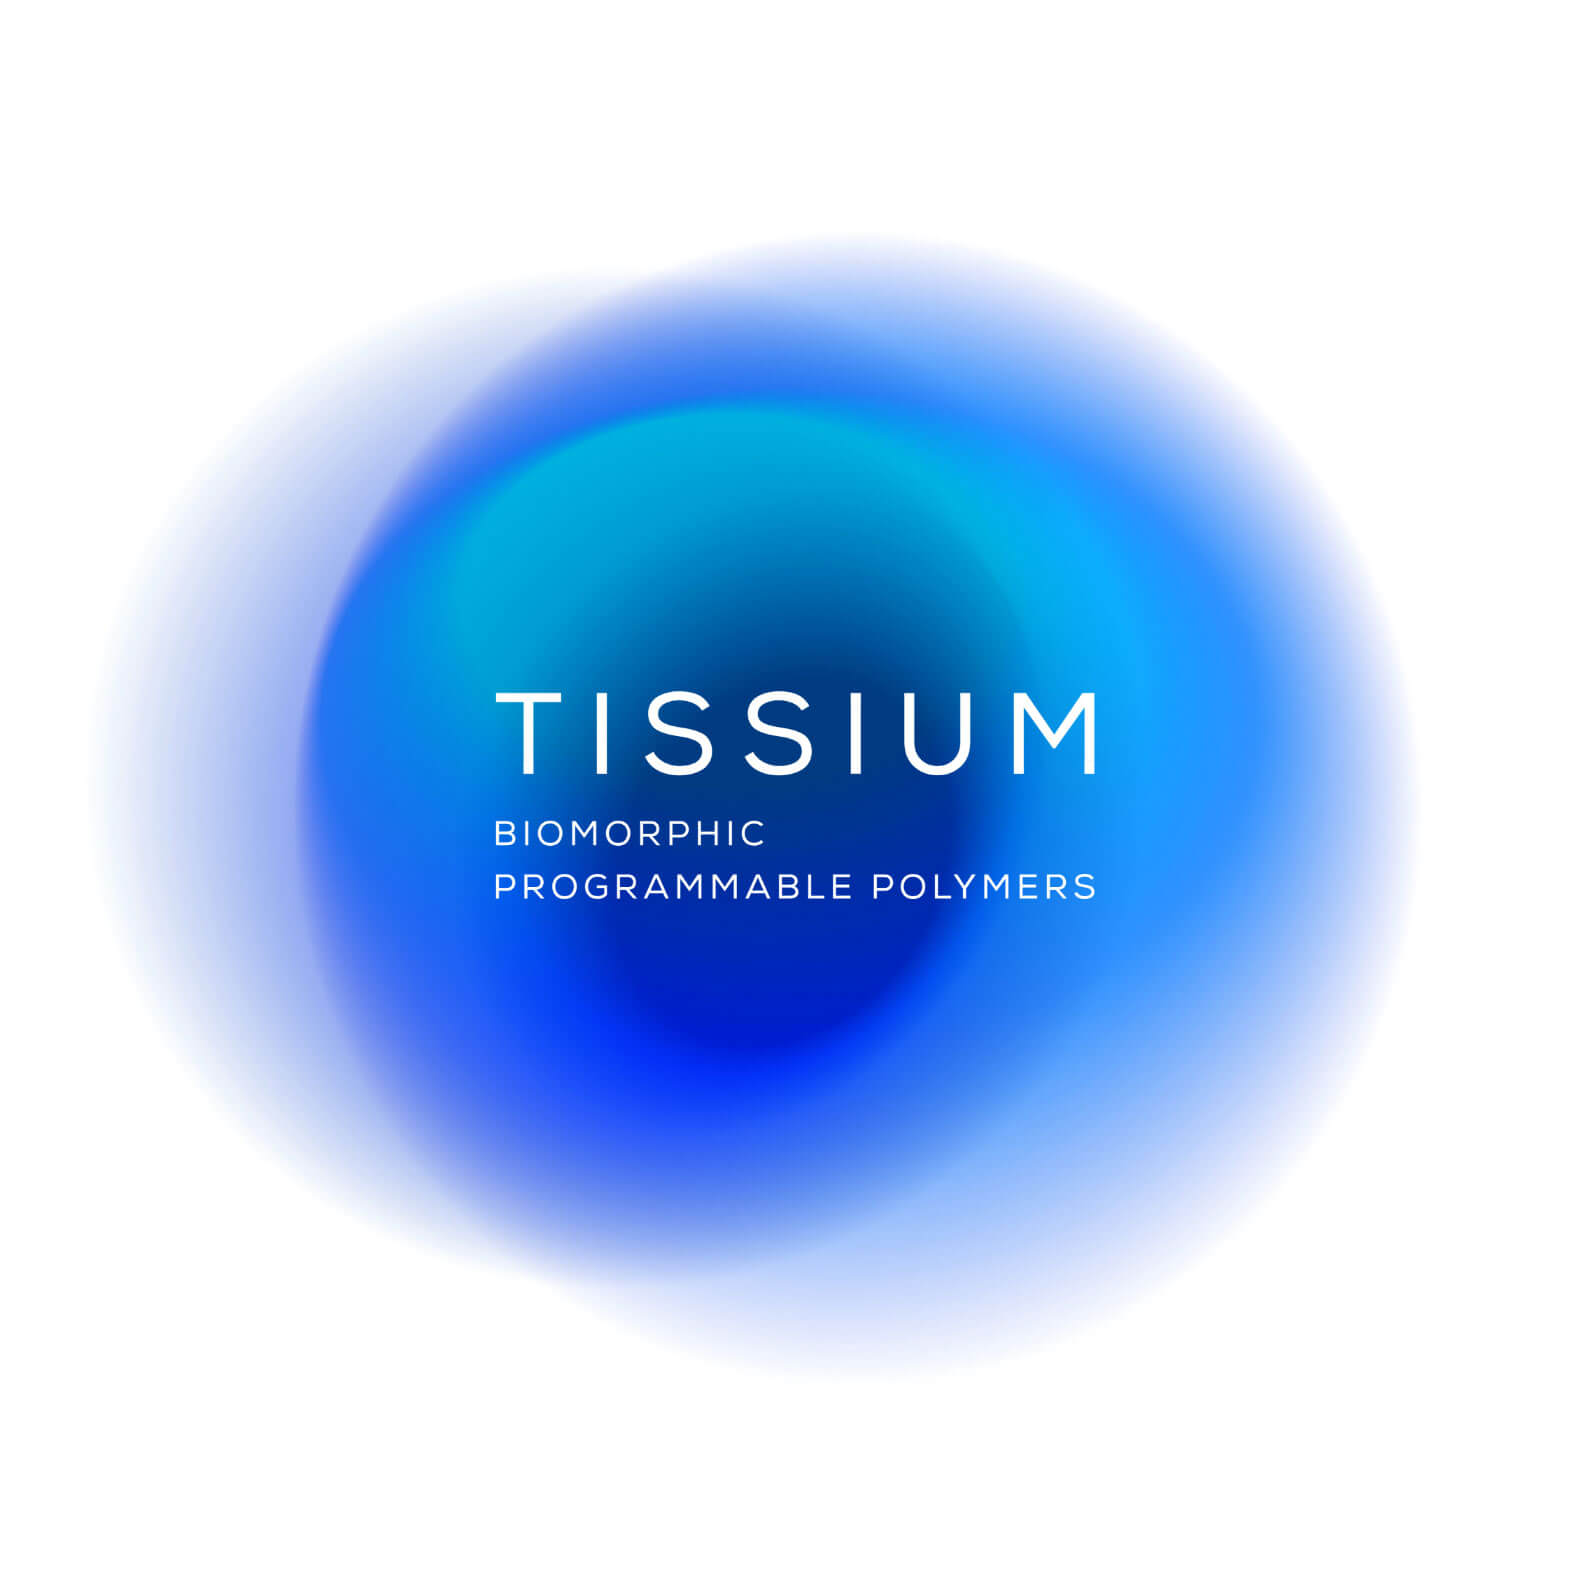 TISSIUM - Biomorphic programmable polymers